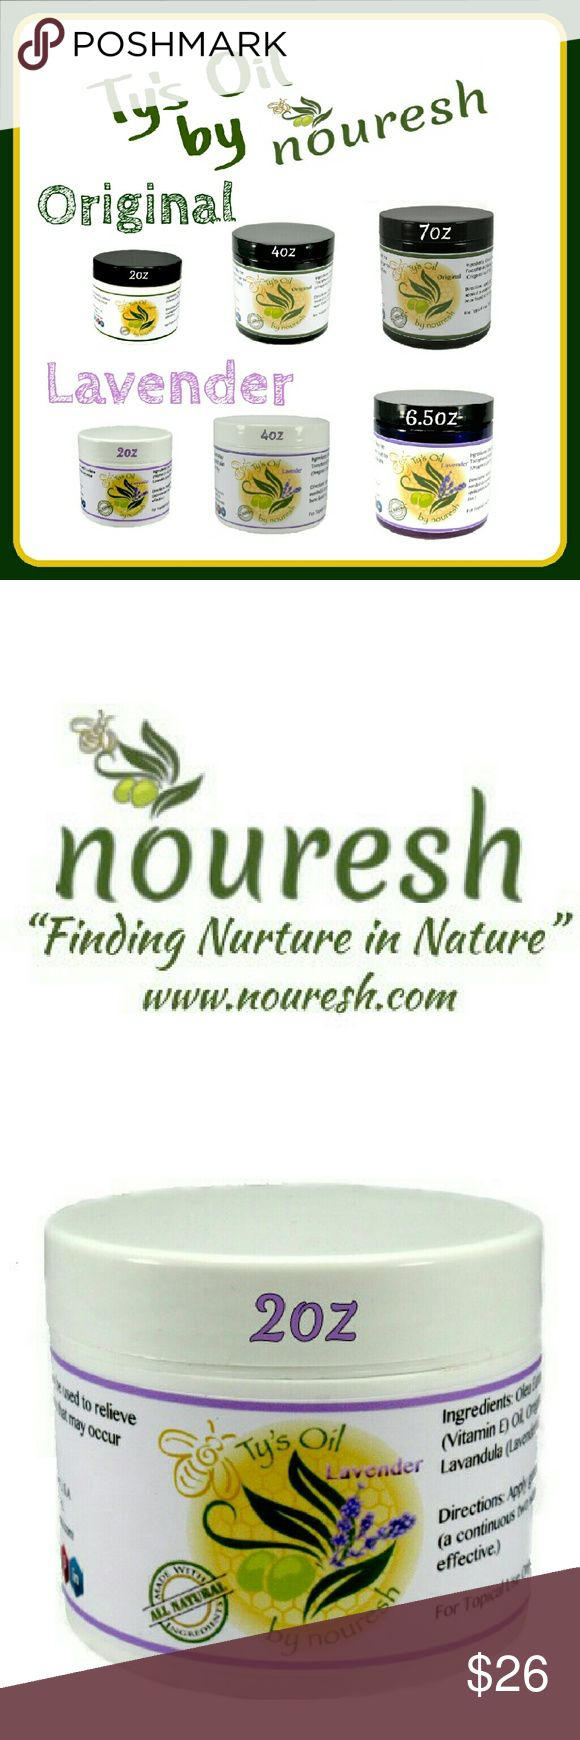 All Natural Skin care for Eczema, Psoriasis, etc All Natural Skin care by nouresh for Eczema, Psoriasis, and even Diaper rash, our family recipe is helping families get relief from their dry and sensitive skin. Gentle enough for baby and strong enough to tackle those dry skin issues. Various sizes and 2 lines: Original and Lavender. Ingredients: Beeswax, Pomace Olive Oil, Oregano Leaf Oil, Vitamin E Oil, and Lavender* [*only in lavender line ].  I use this on my skin and face morning and…